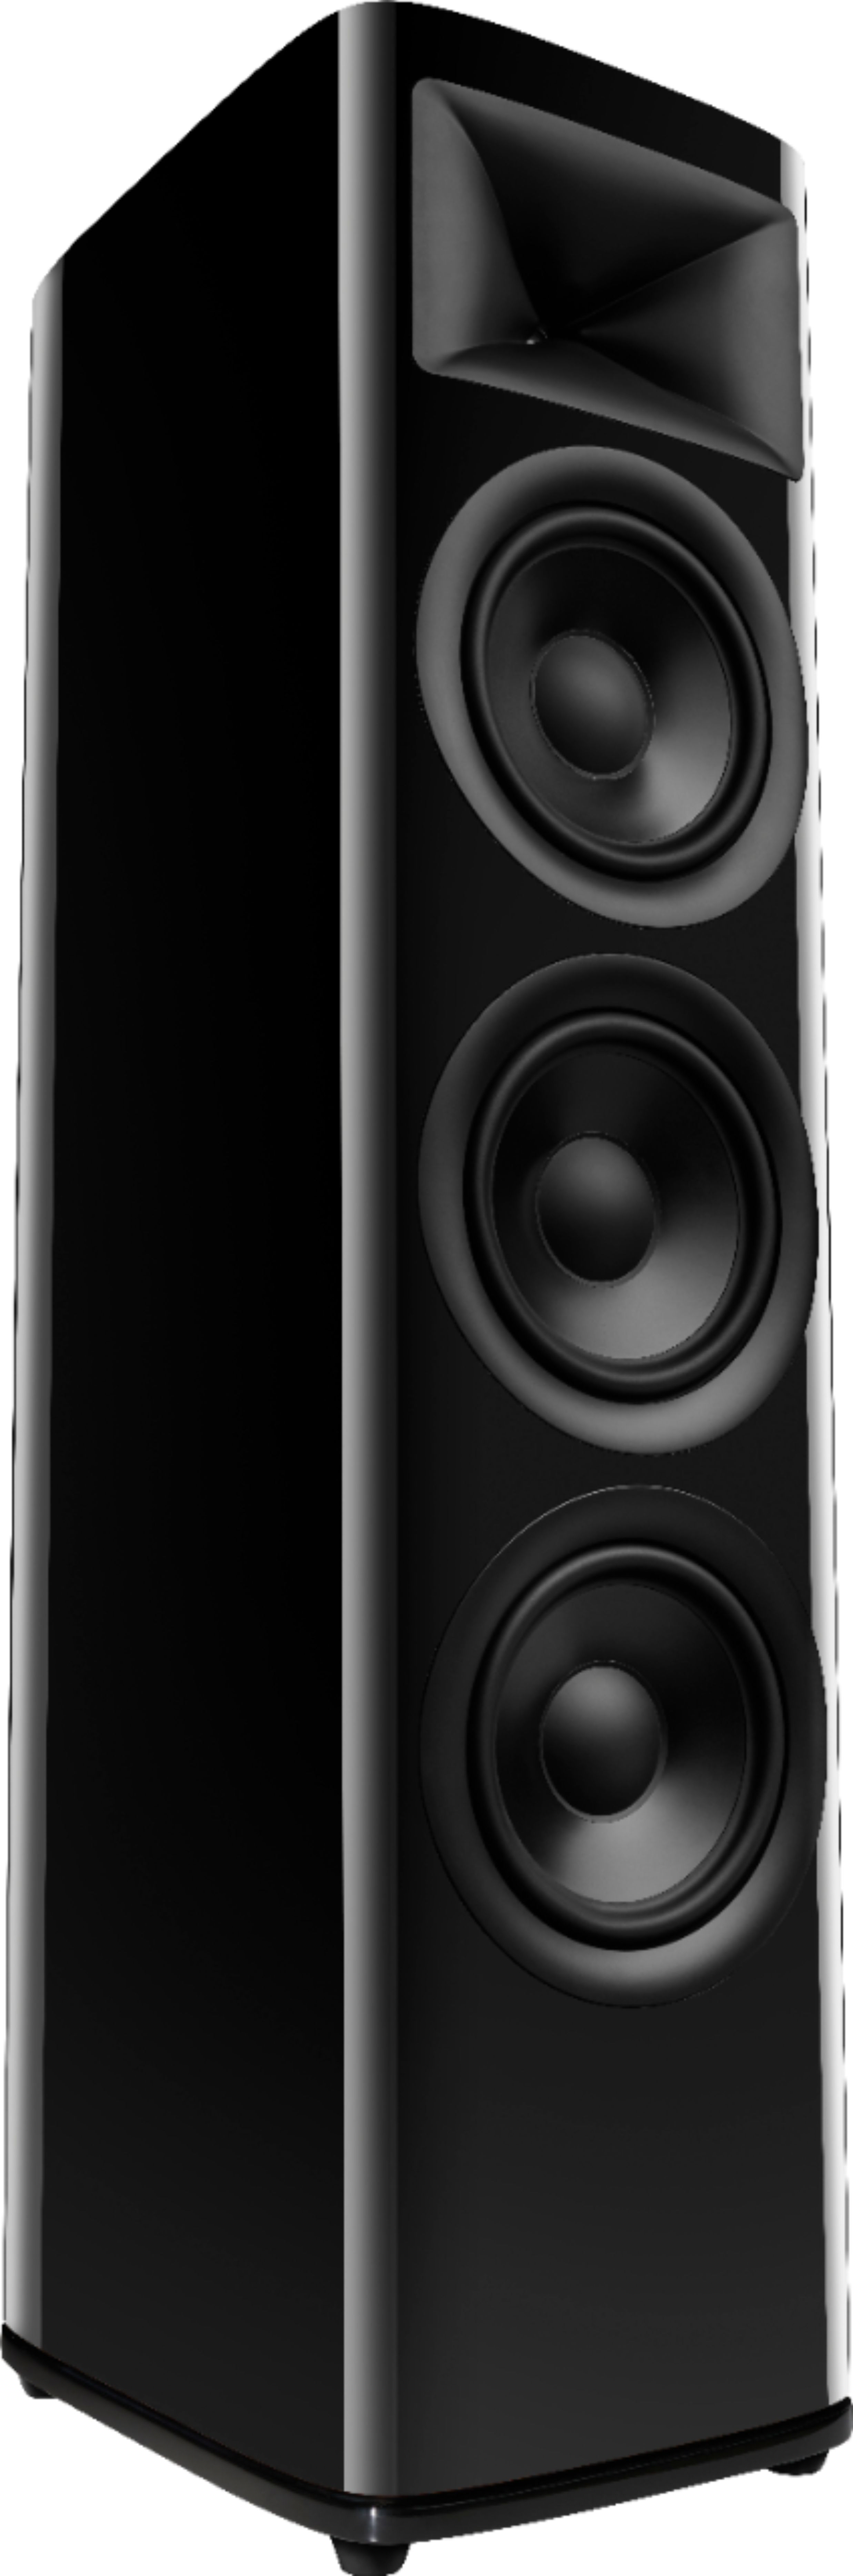 """HDI3800 Triple 8-inch 2-1/2 way Floorstanding Loudspeaker with 1"""" compression tweeter, gloss finish"""